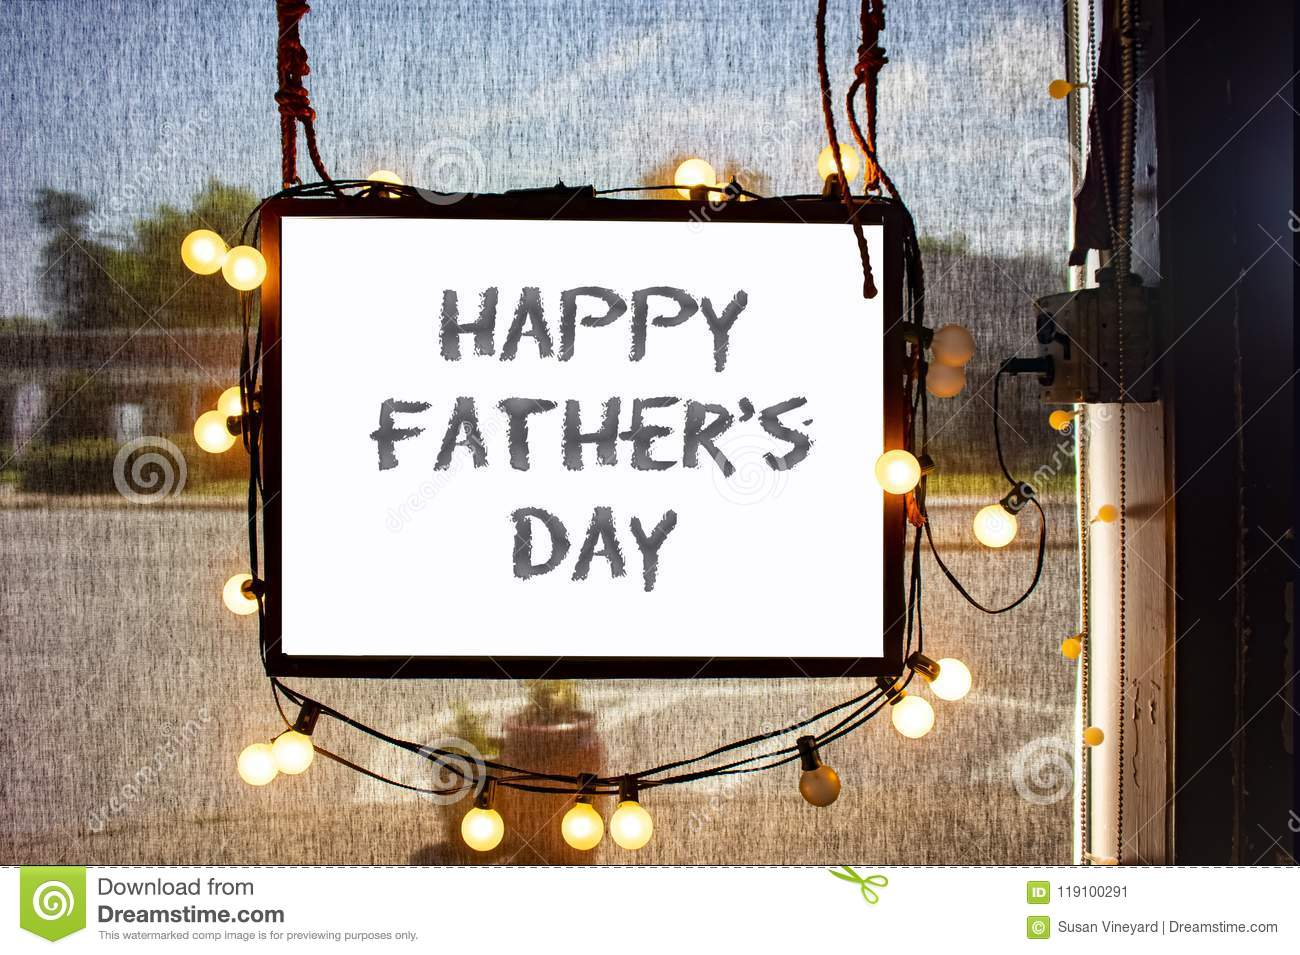 Happy Fathers Day Written On Hanging Sign Surrounded By